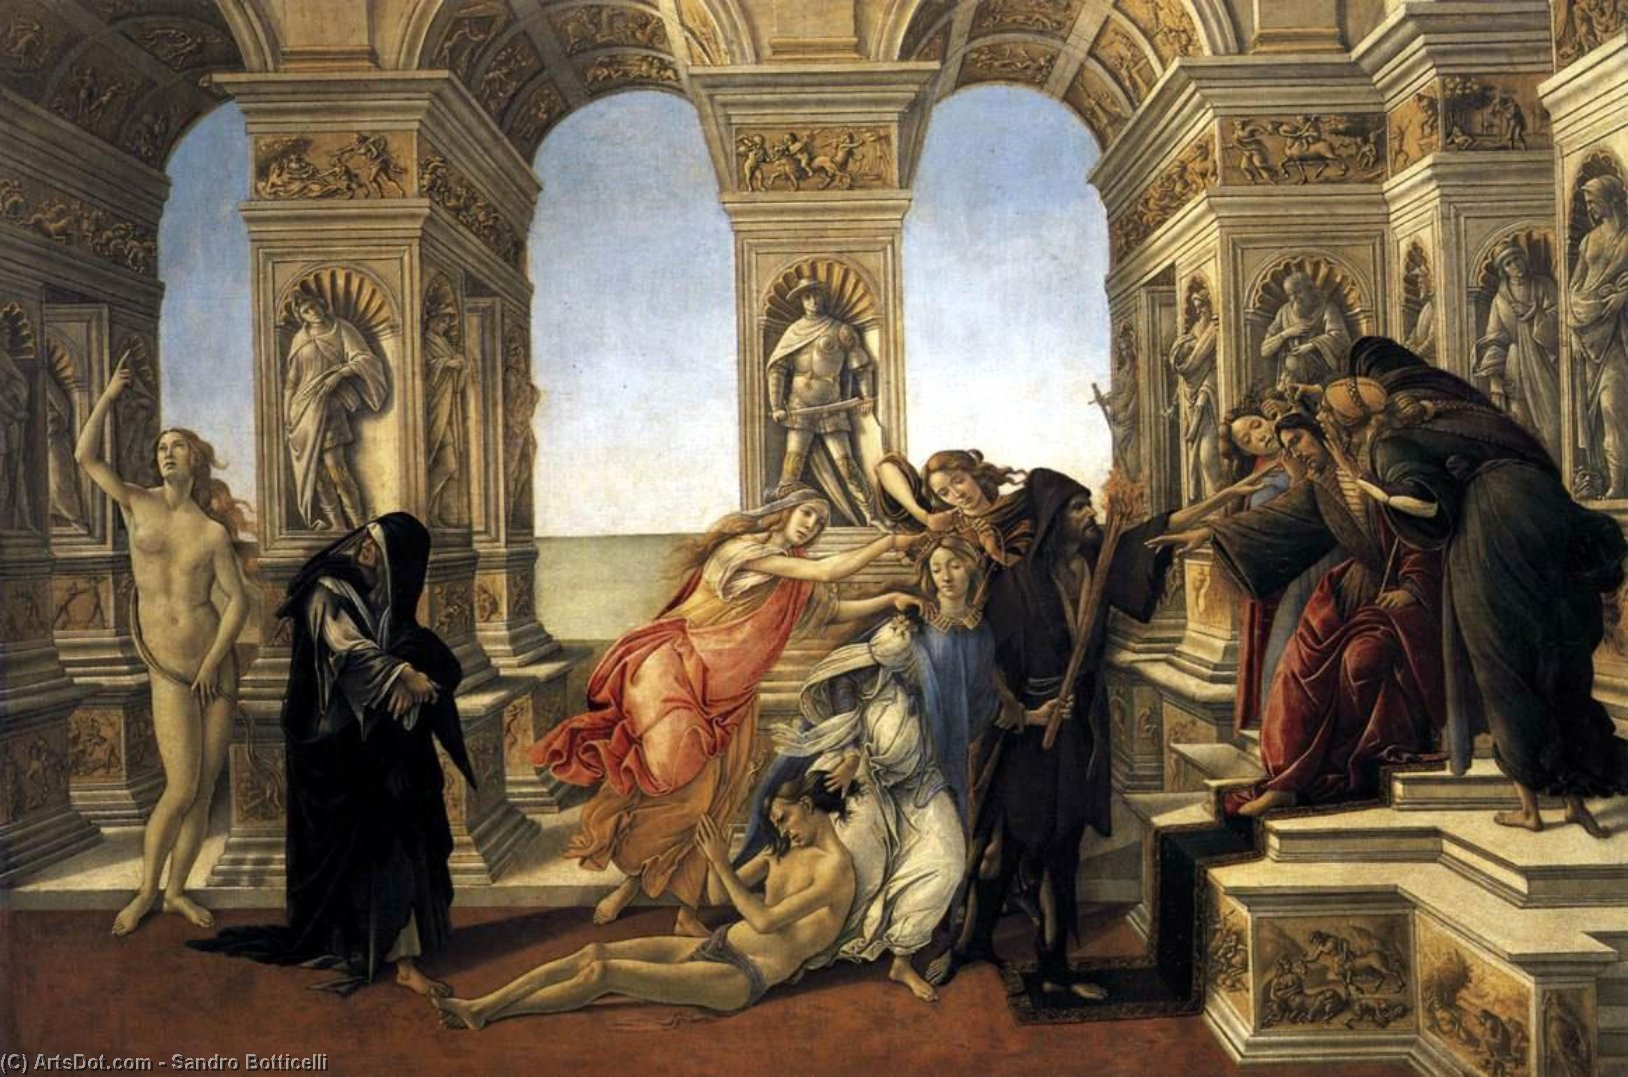 Wikioo.org - The Encyclopedia of Fine Arts - Painting, Artwork by Sandro Botticelli - Calumny of Apelles